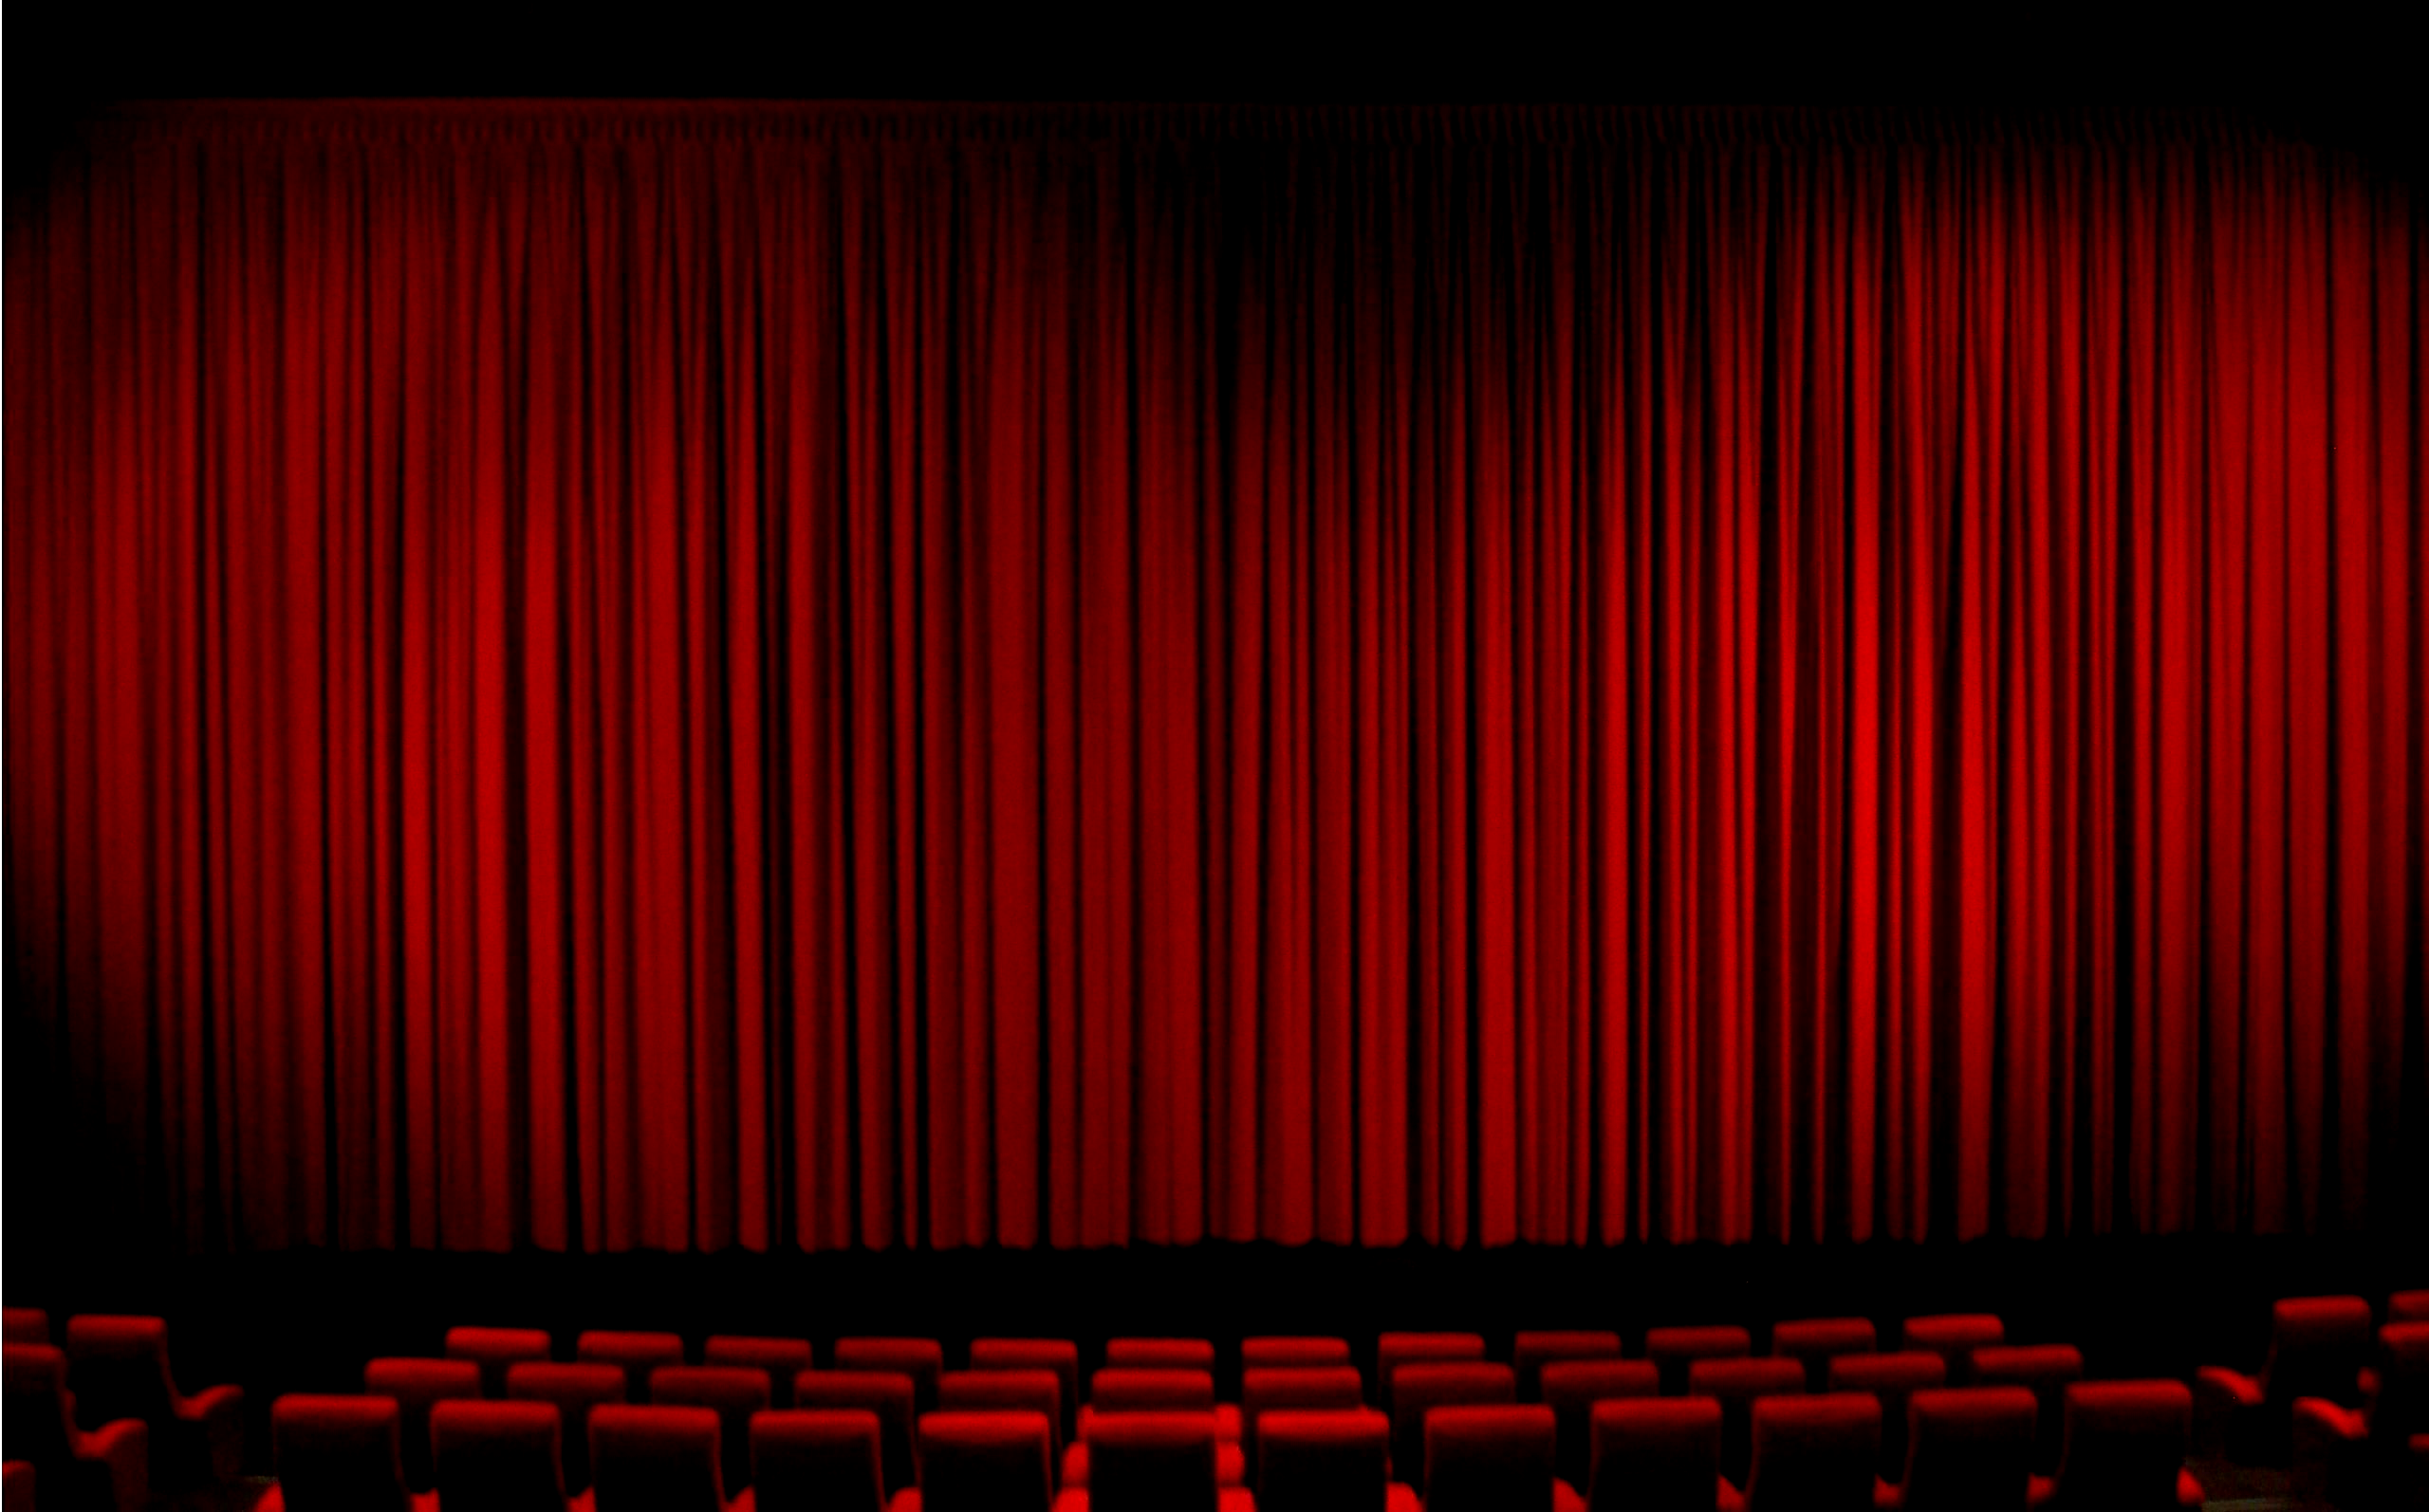 Theater Wallpaper 41 Movie Theater Wallpapers On Wallpaperplay Theater Backgrounds Wallpaper Cave Pin By Clarisse Edwards On Feeding My Soul In 2019 Red Cu